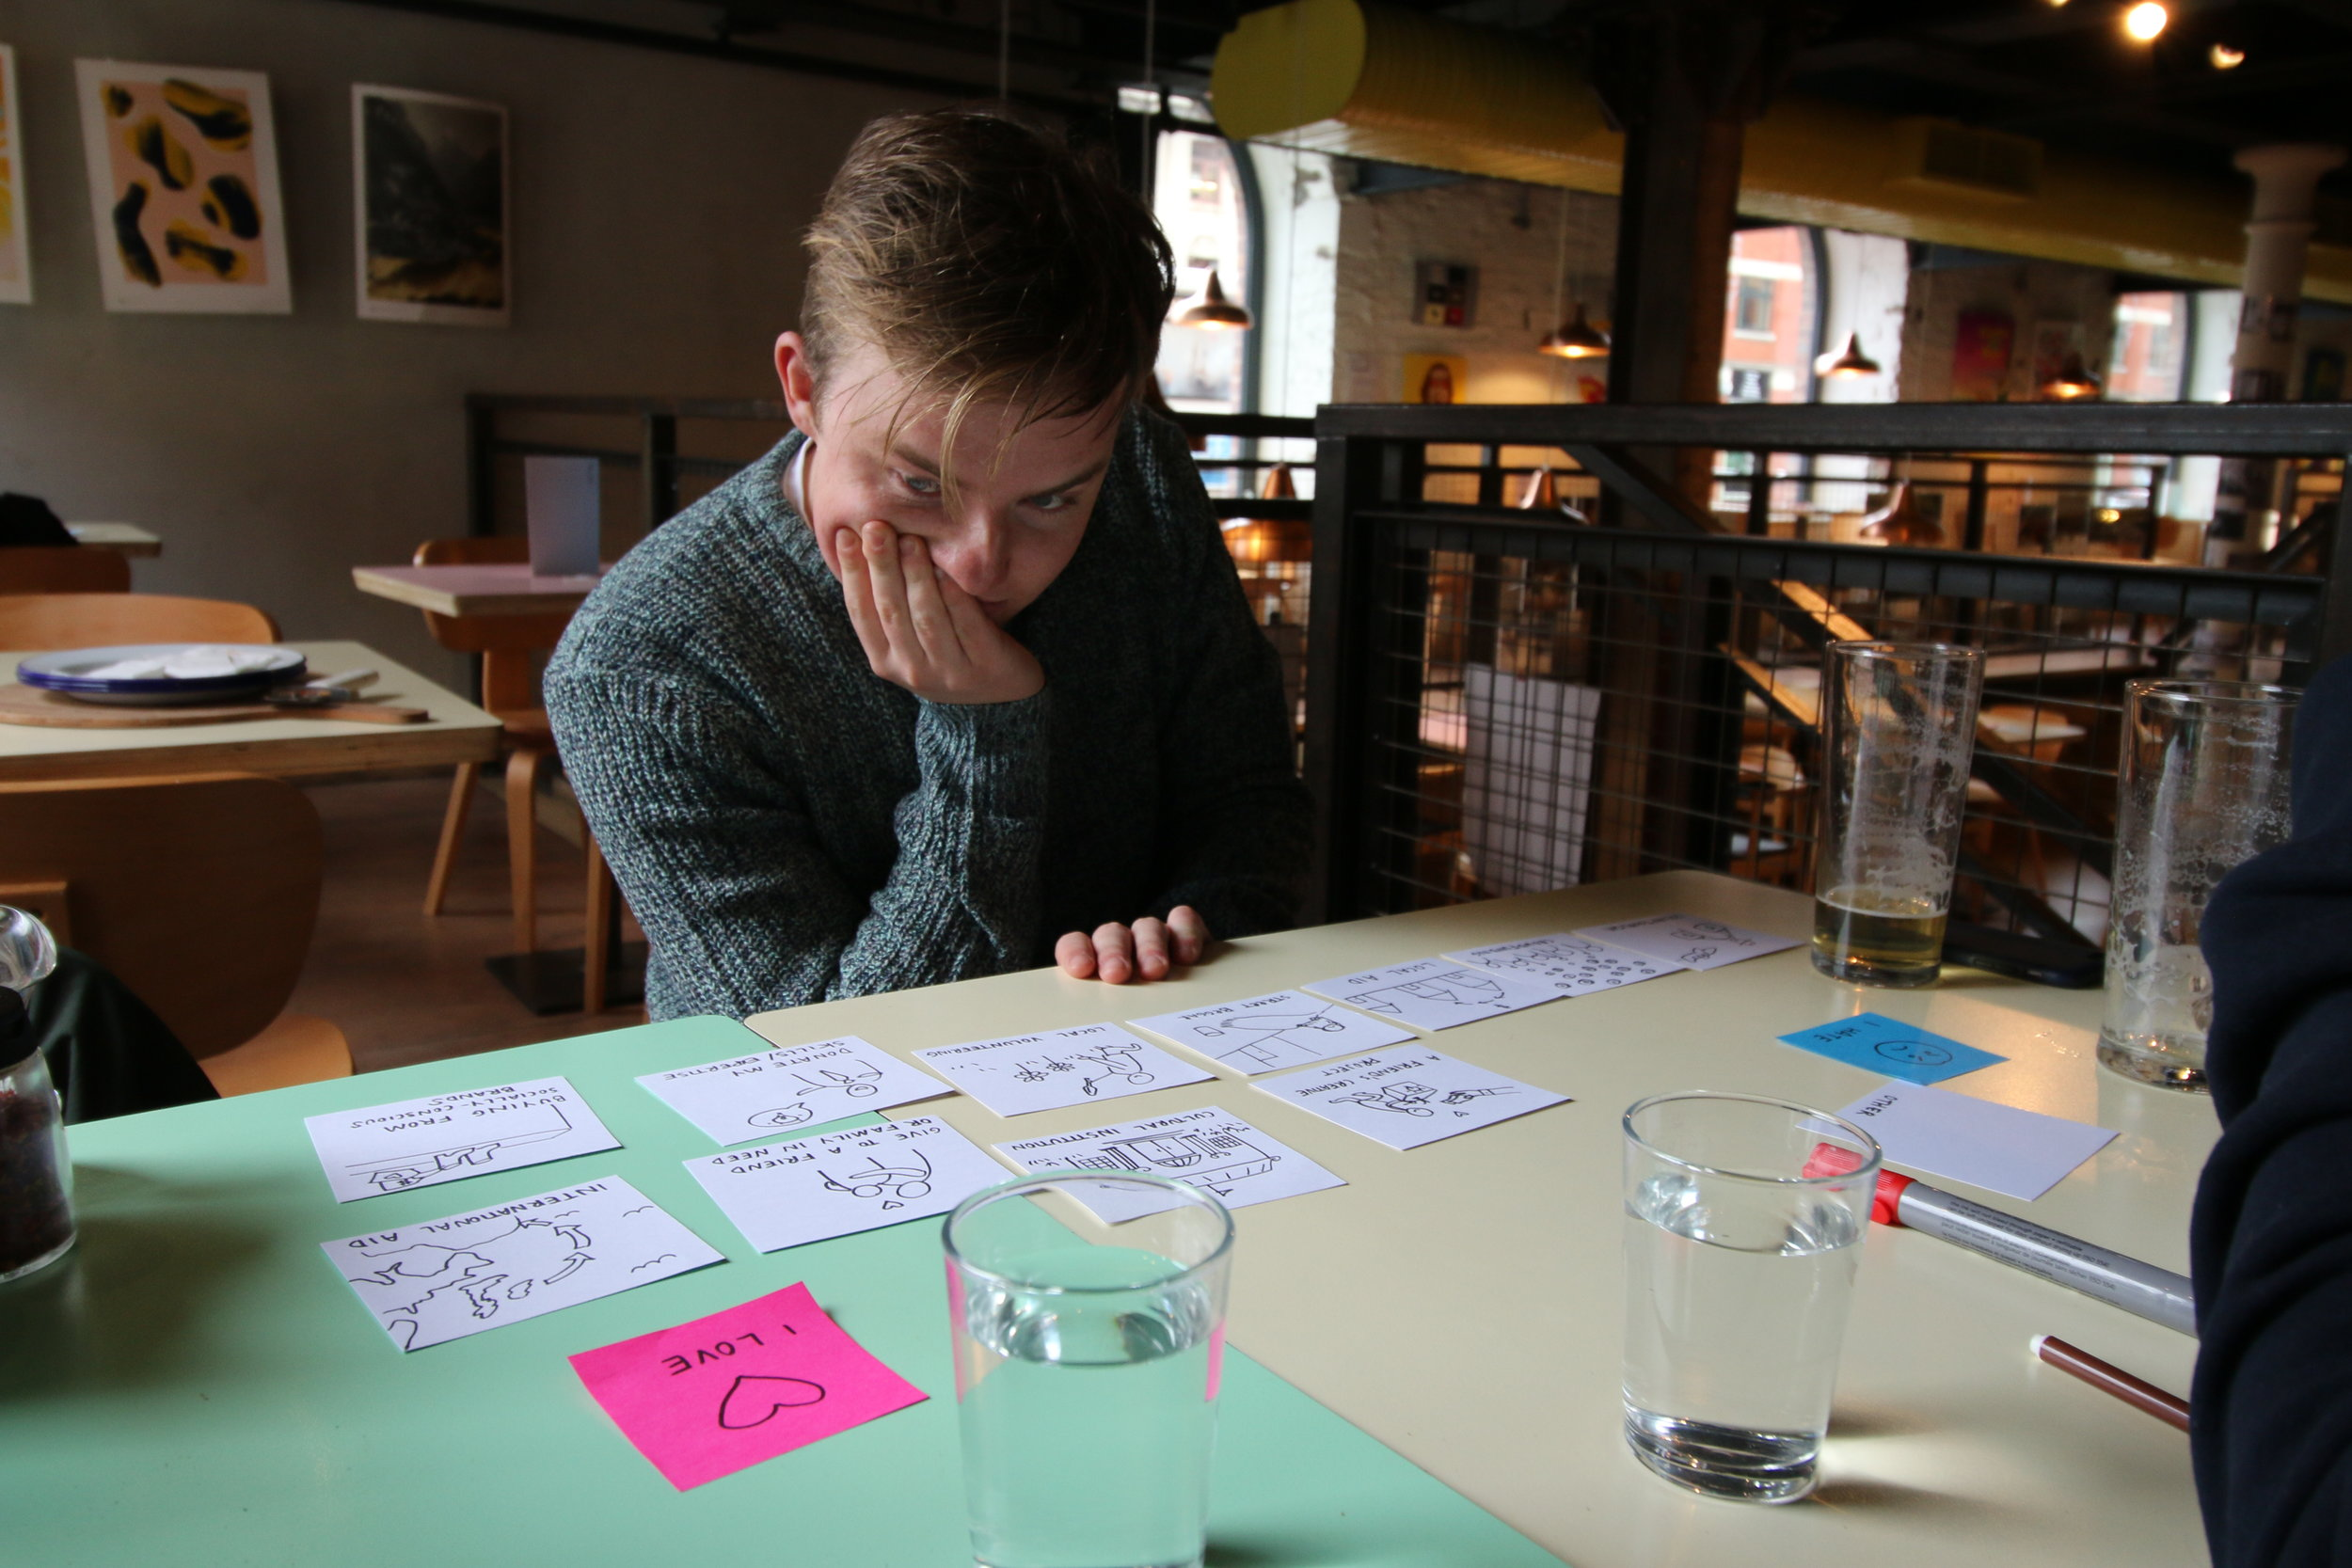 In-depth interview and card sort activity with Jake (23), who provides a free walking tour alternative in Manchester, UK